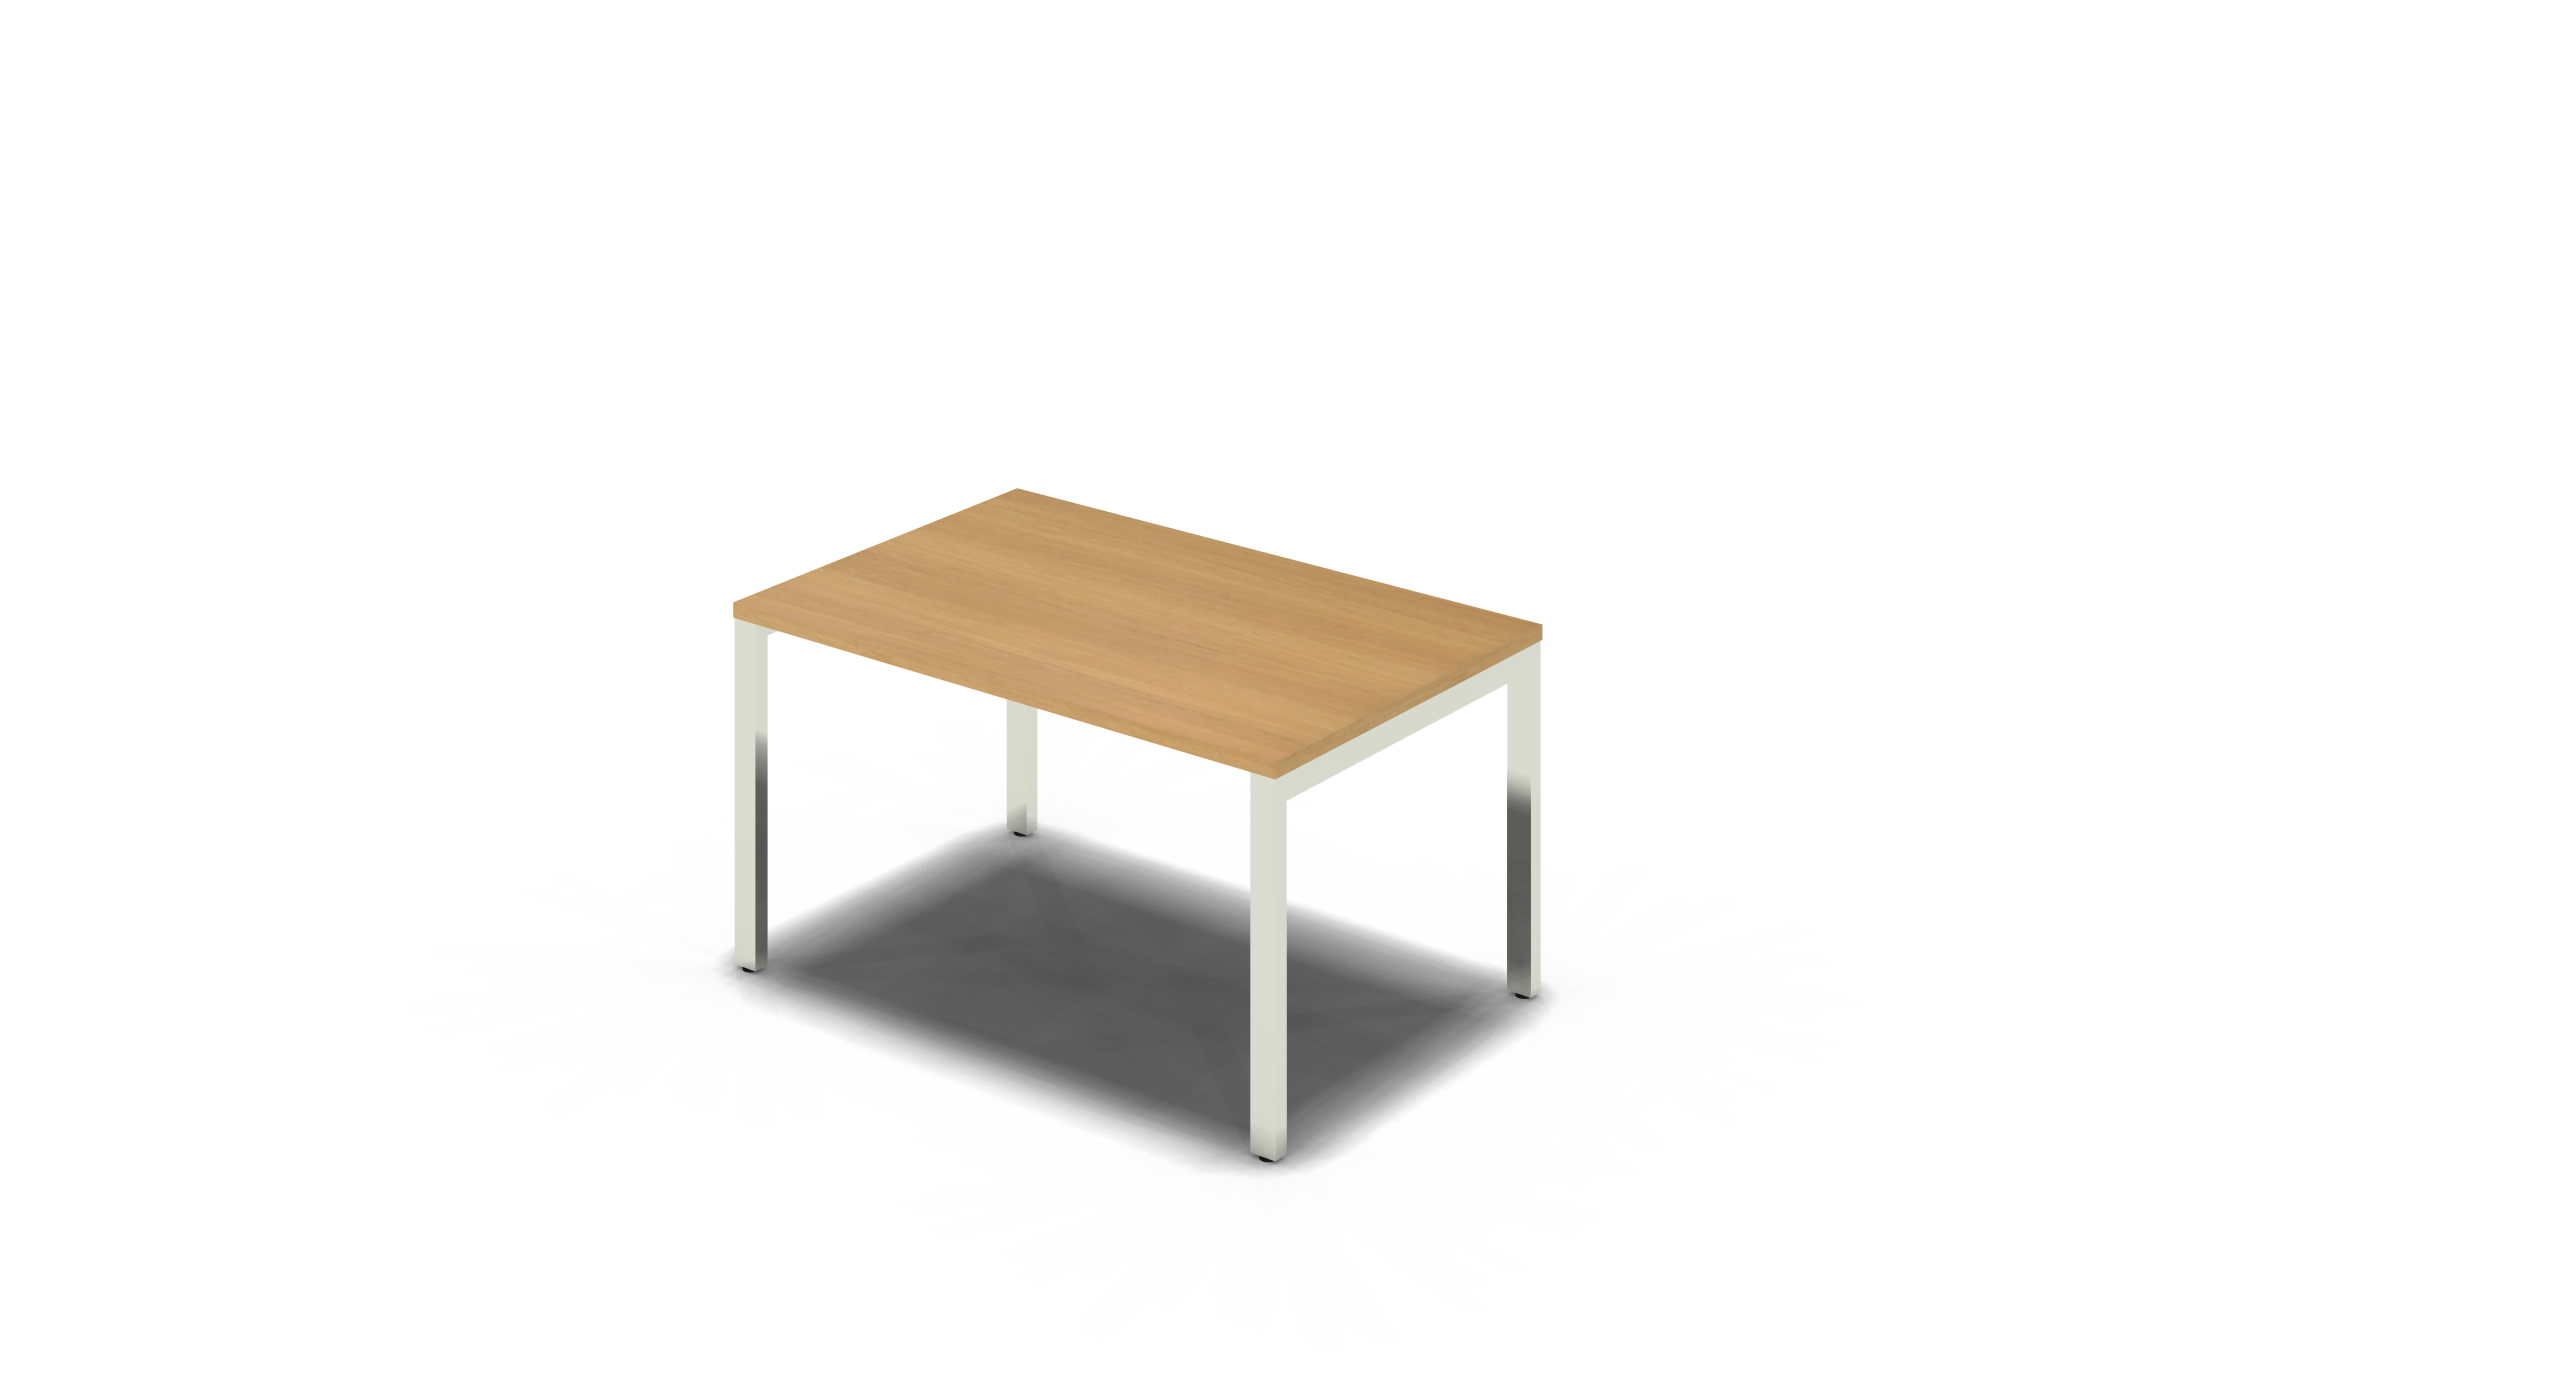 Table_Square_1200x750_Chrome_Oak_noOption